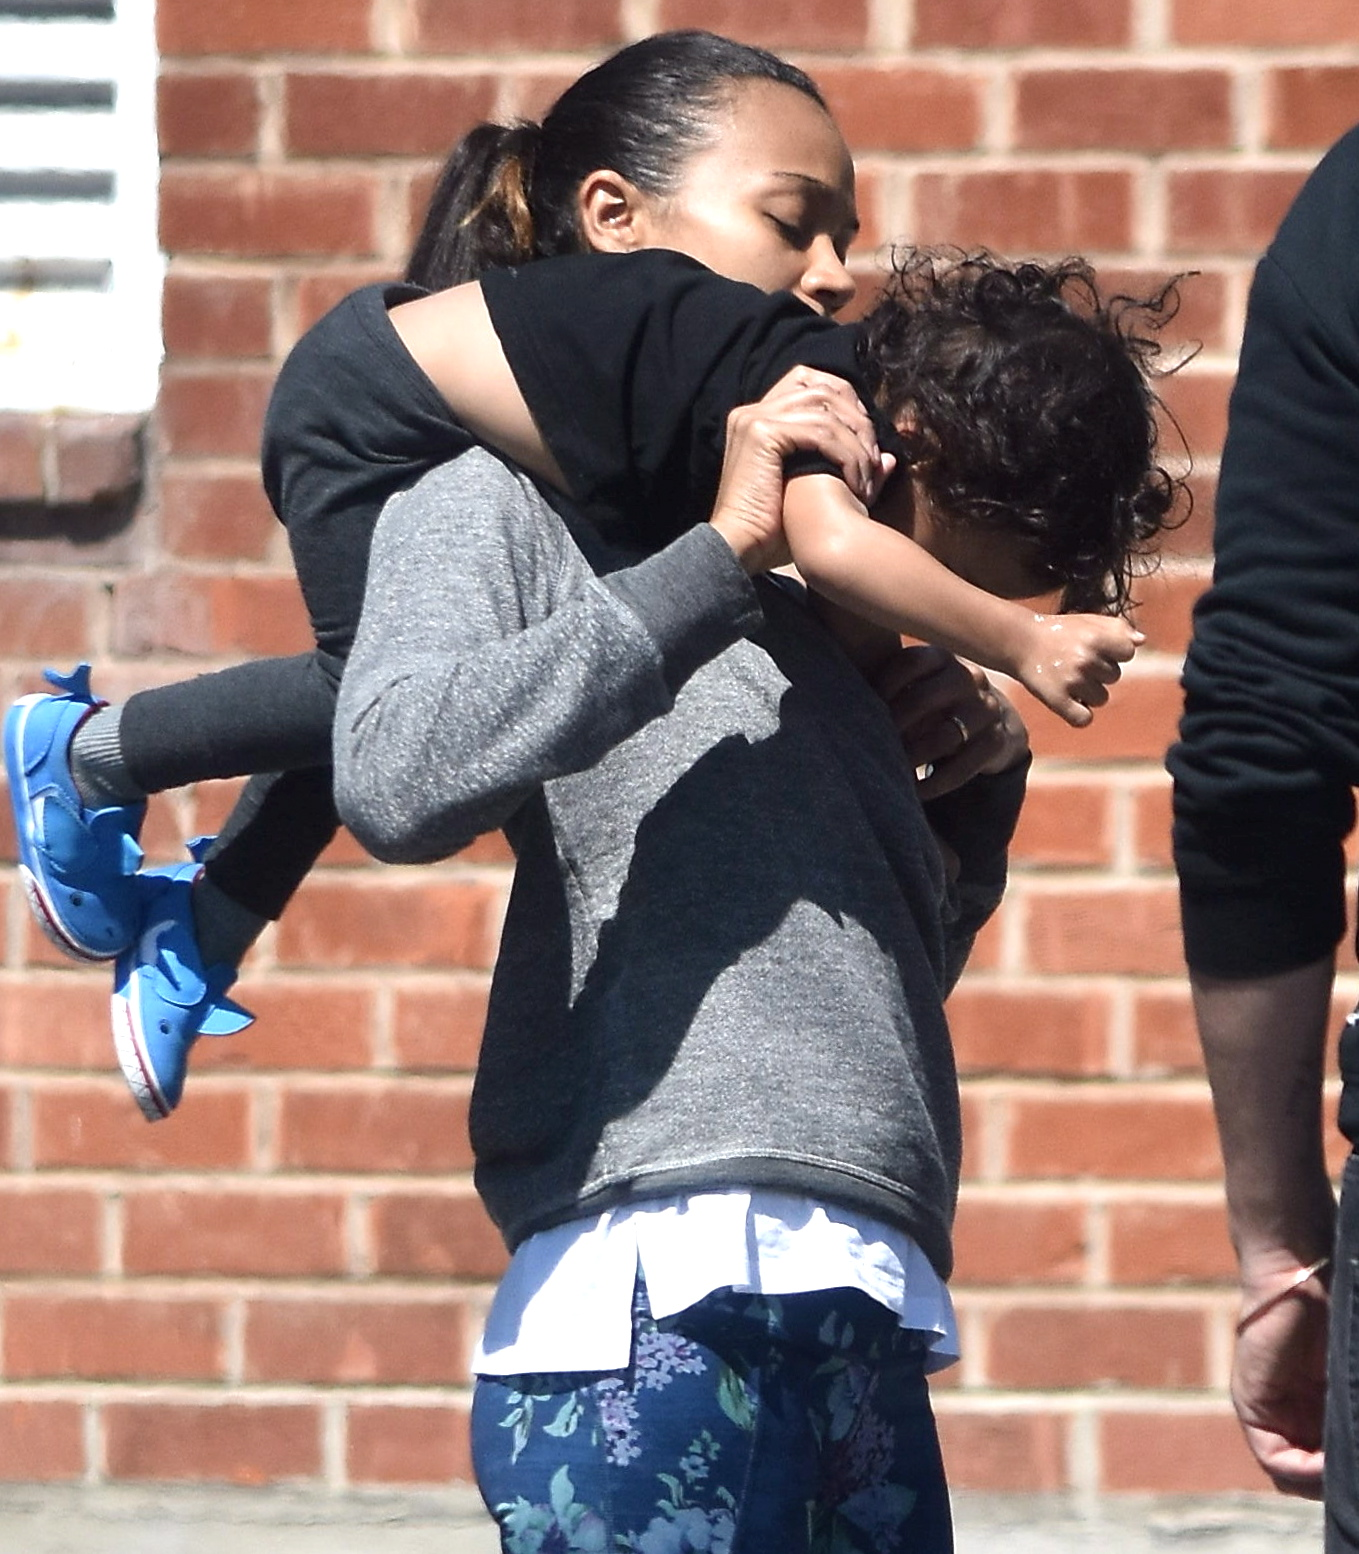 EXCLUSIVE Zoe Saldana Literally Juggles Her Son During Family Outing